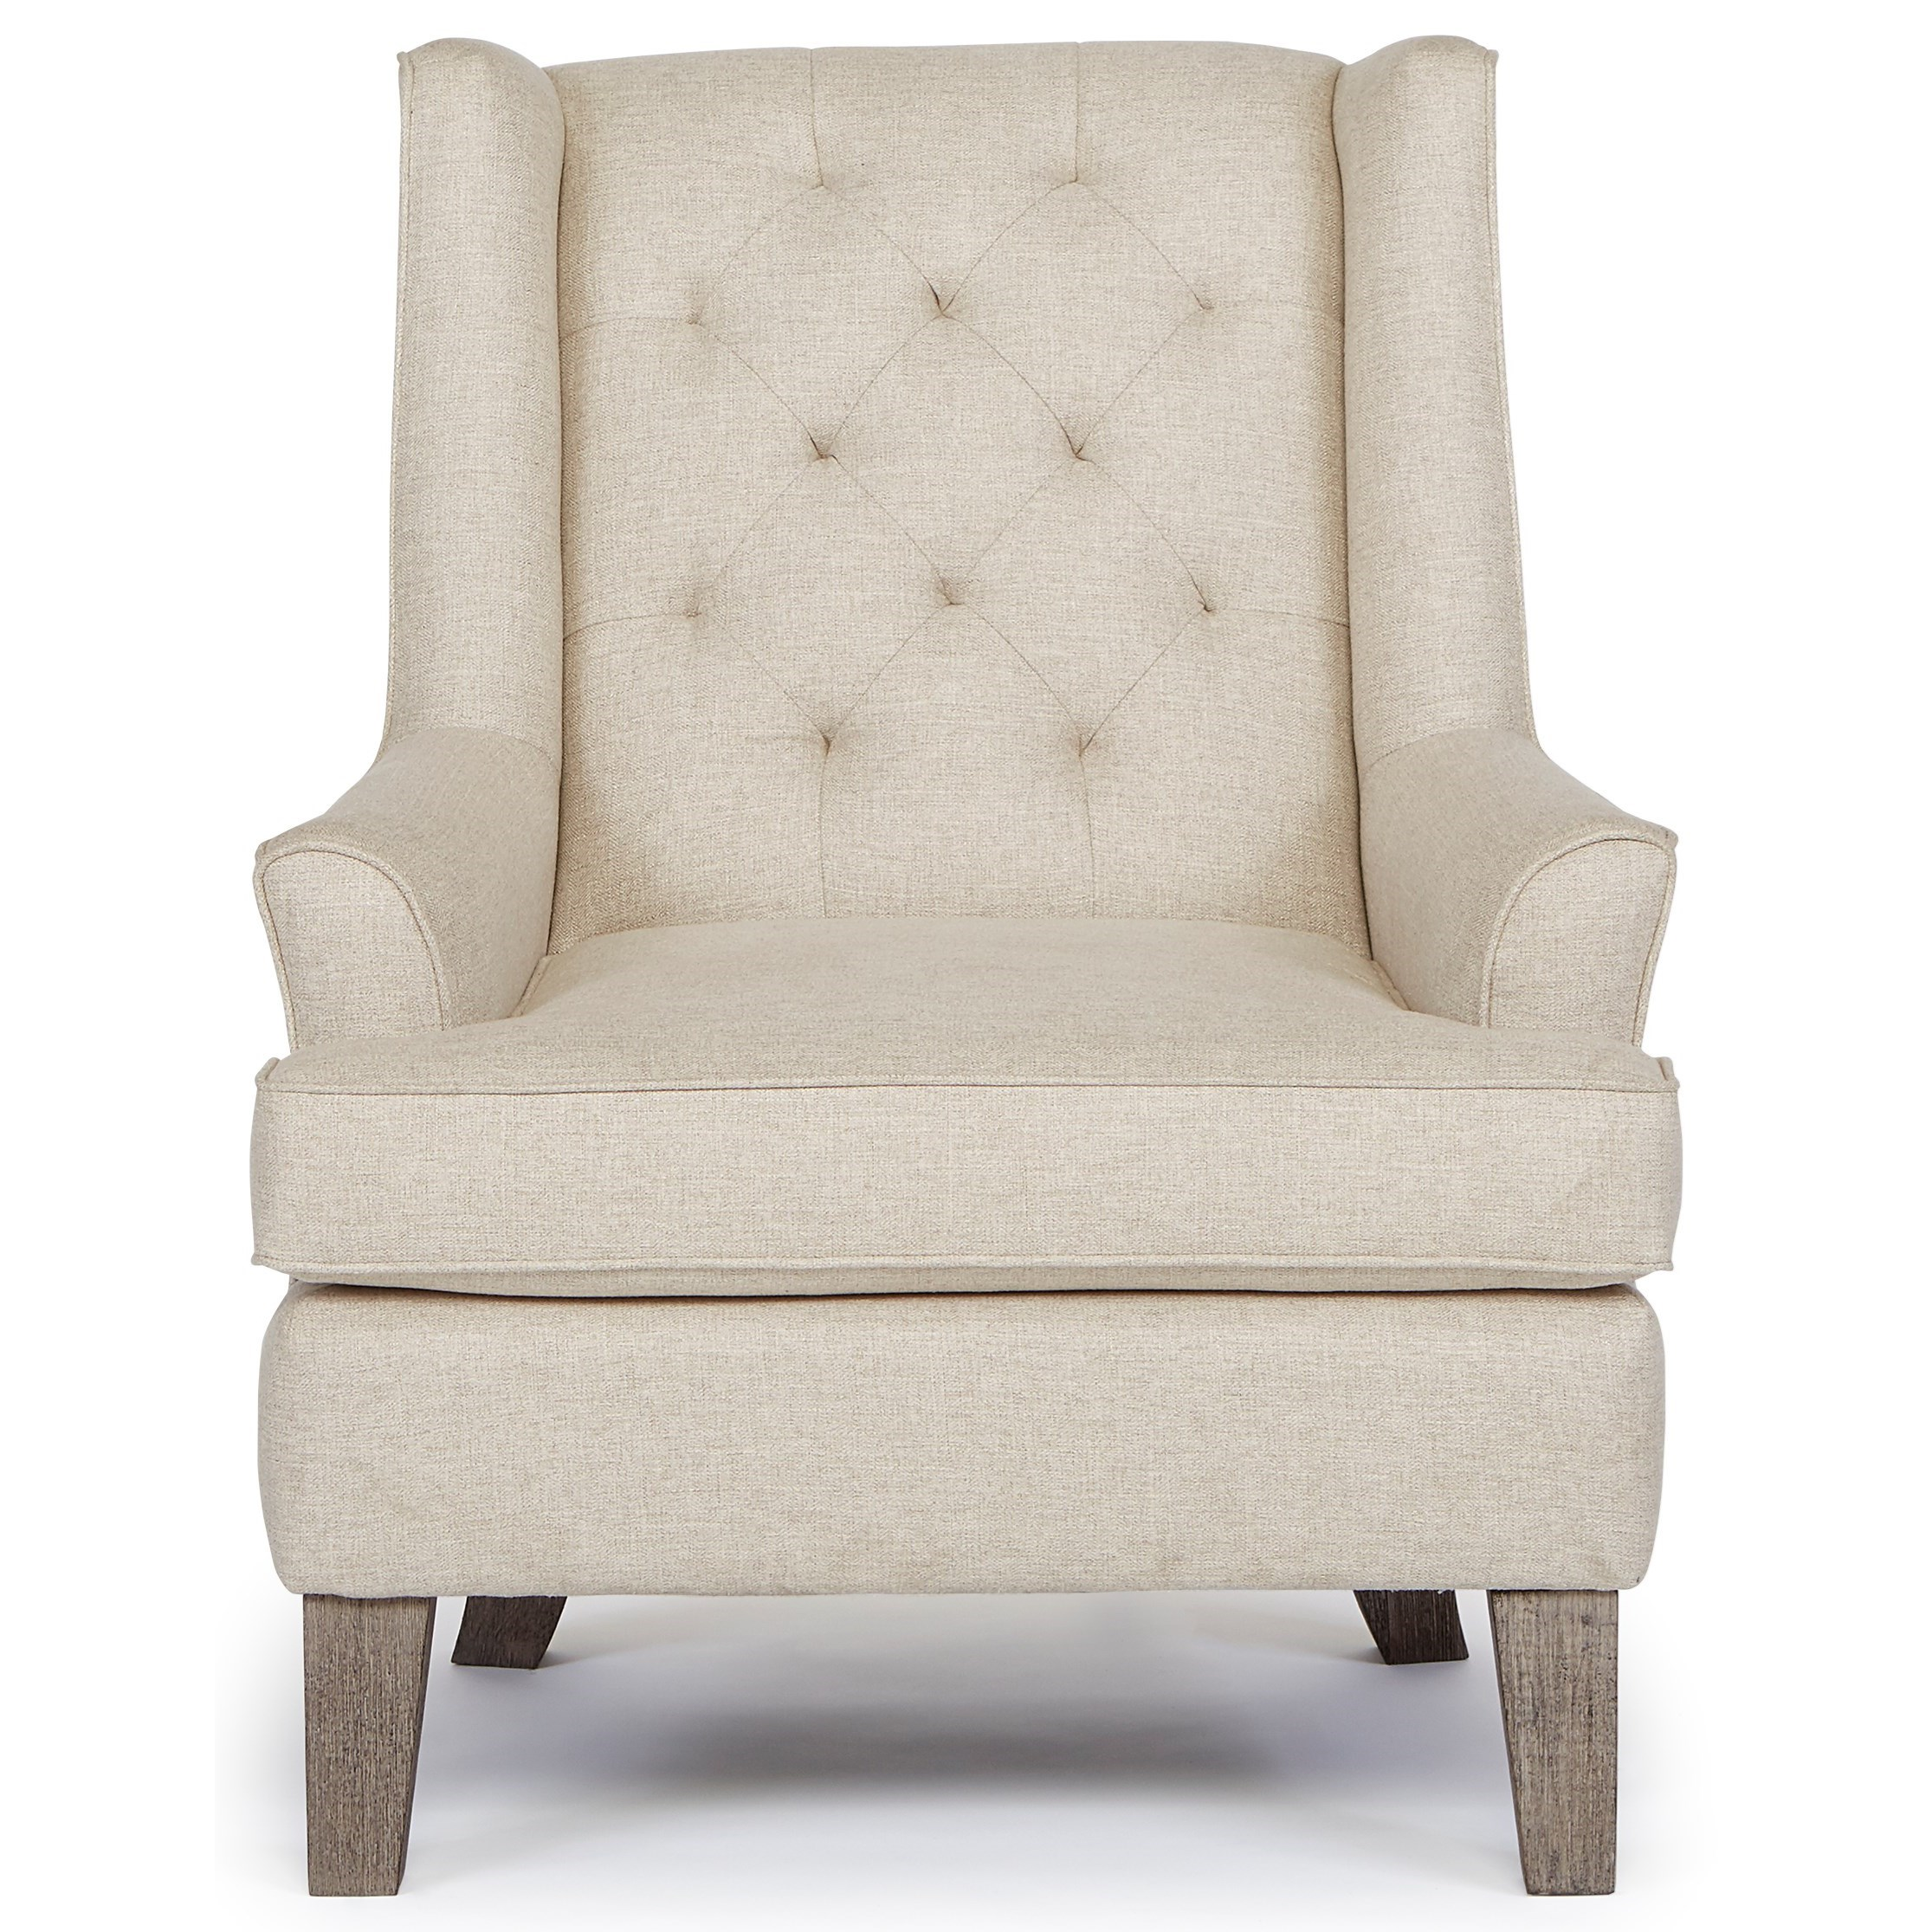 Best home furnishings chairs wing back rebecca wing for Best furniture for home